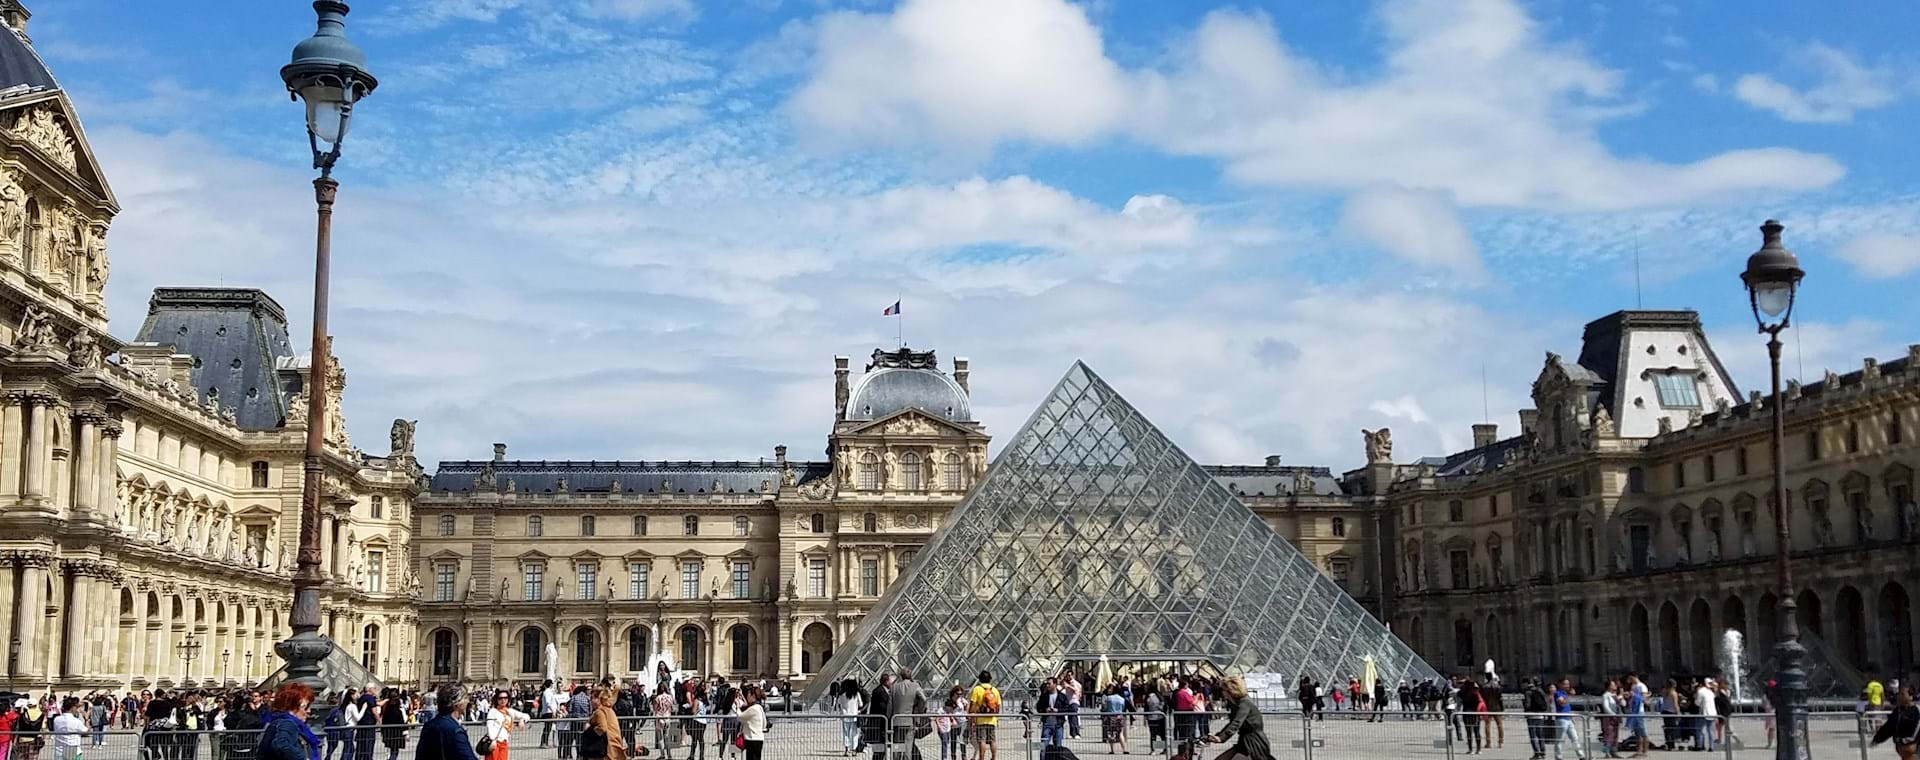 Complete Louvre Masterpieces with Mona Lisa & Royal Palace Tour